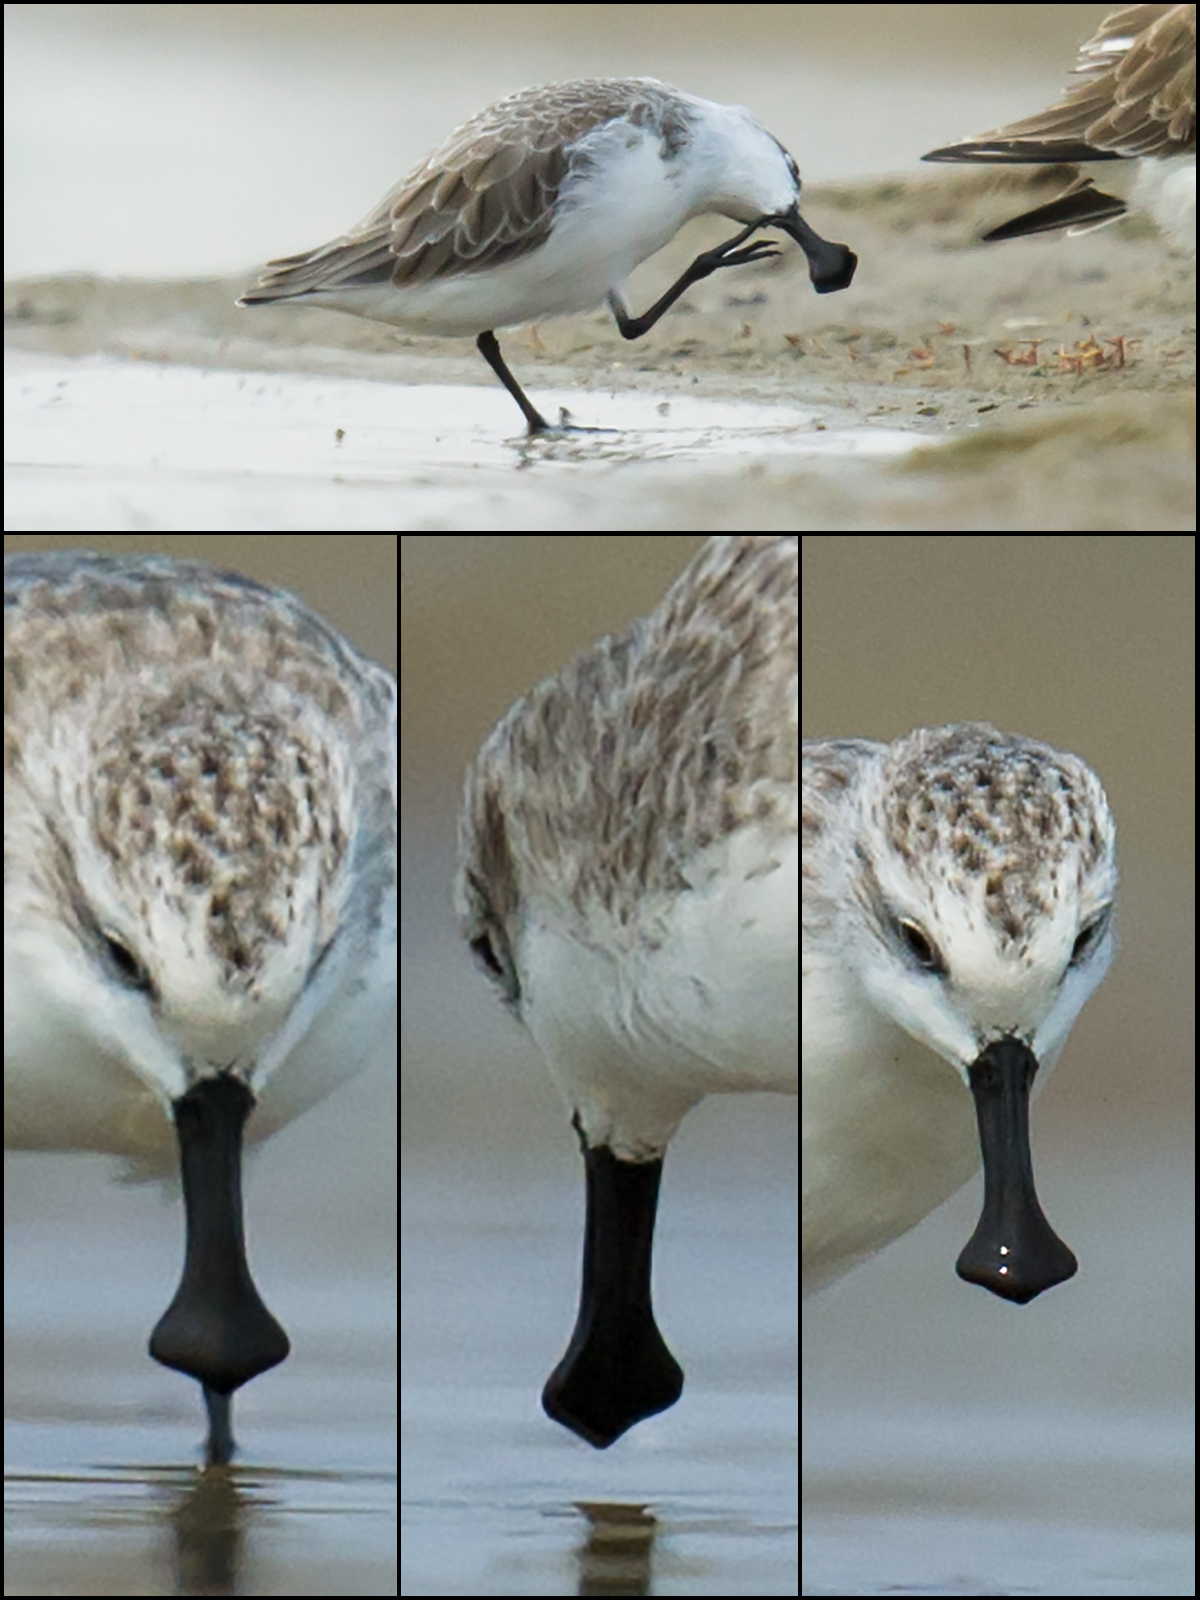 I found a Spoon-billed Sandpiper on 19 Sept. 2012 at Yangkou. Here is a look at the spatulate bill.